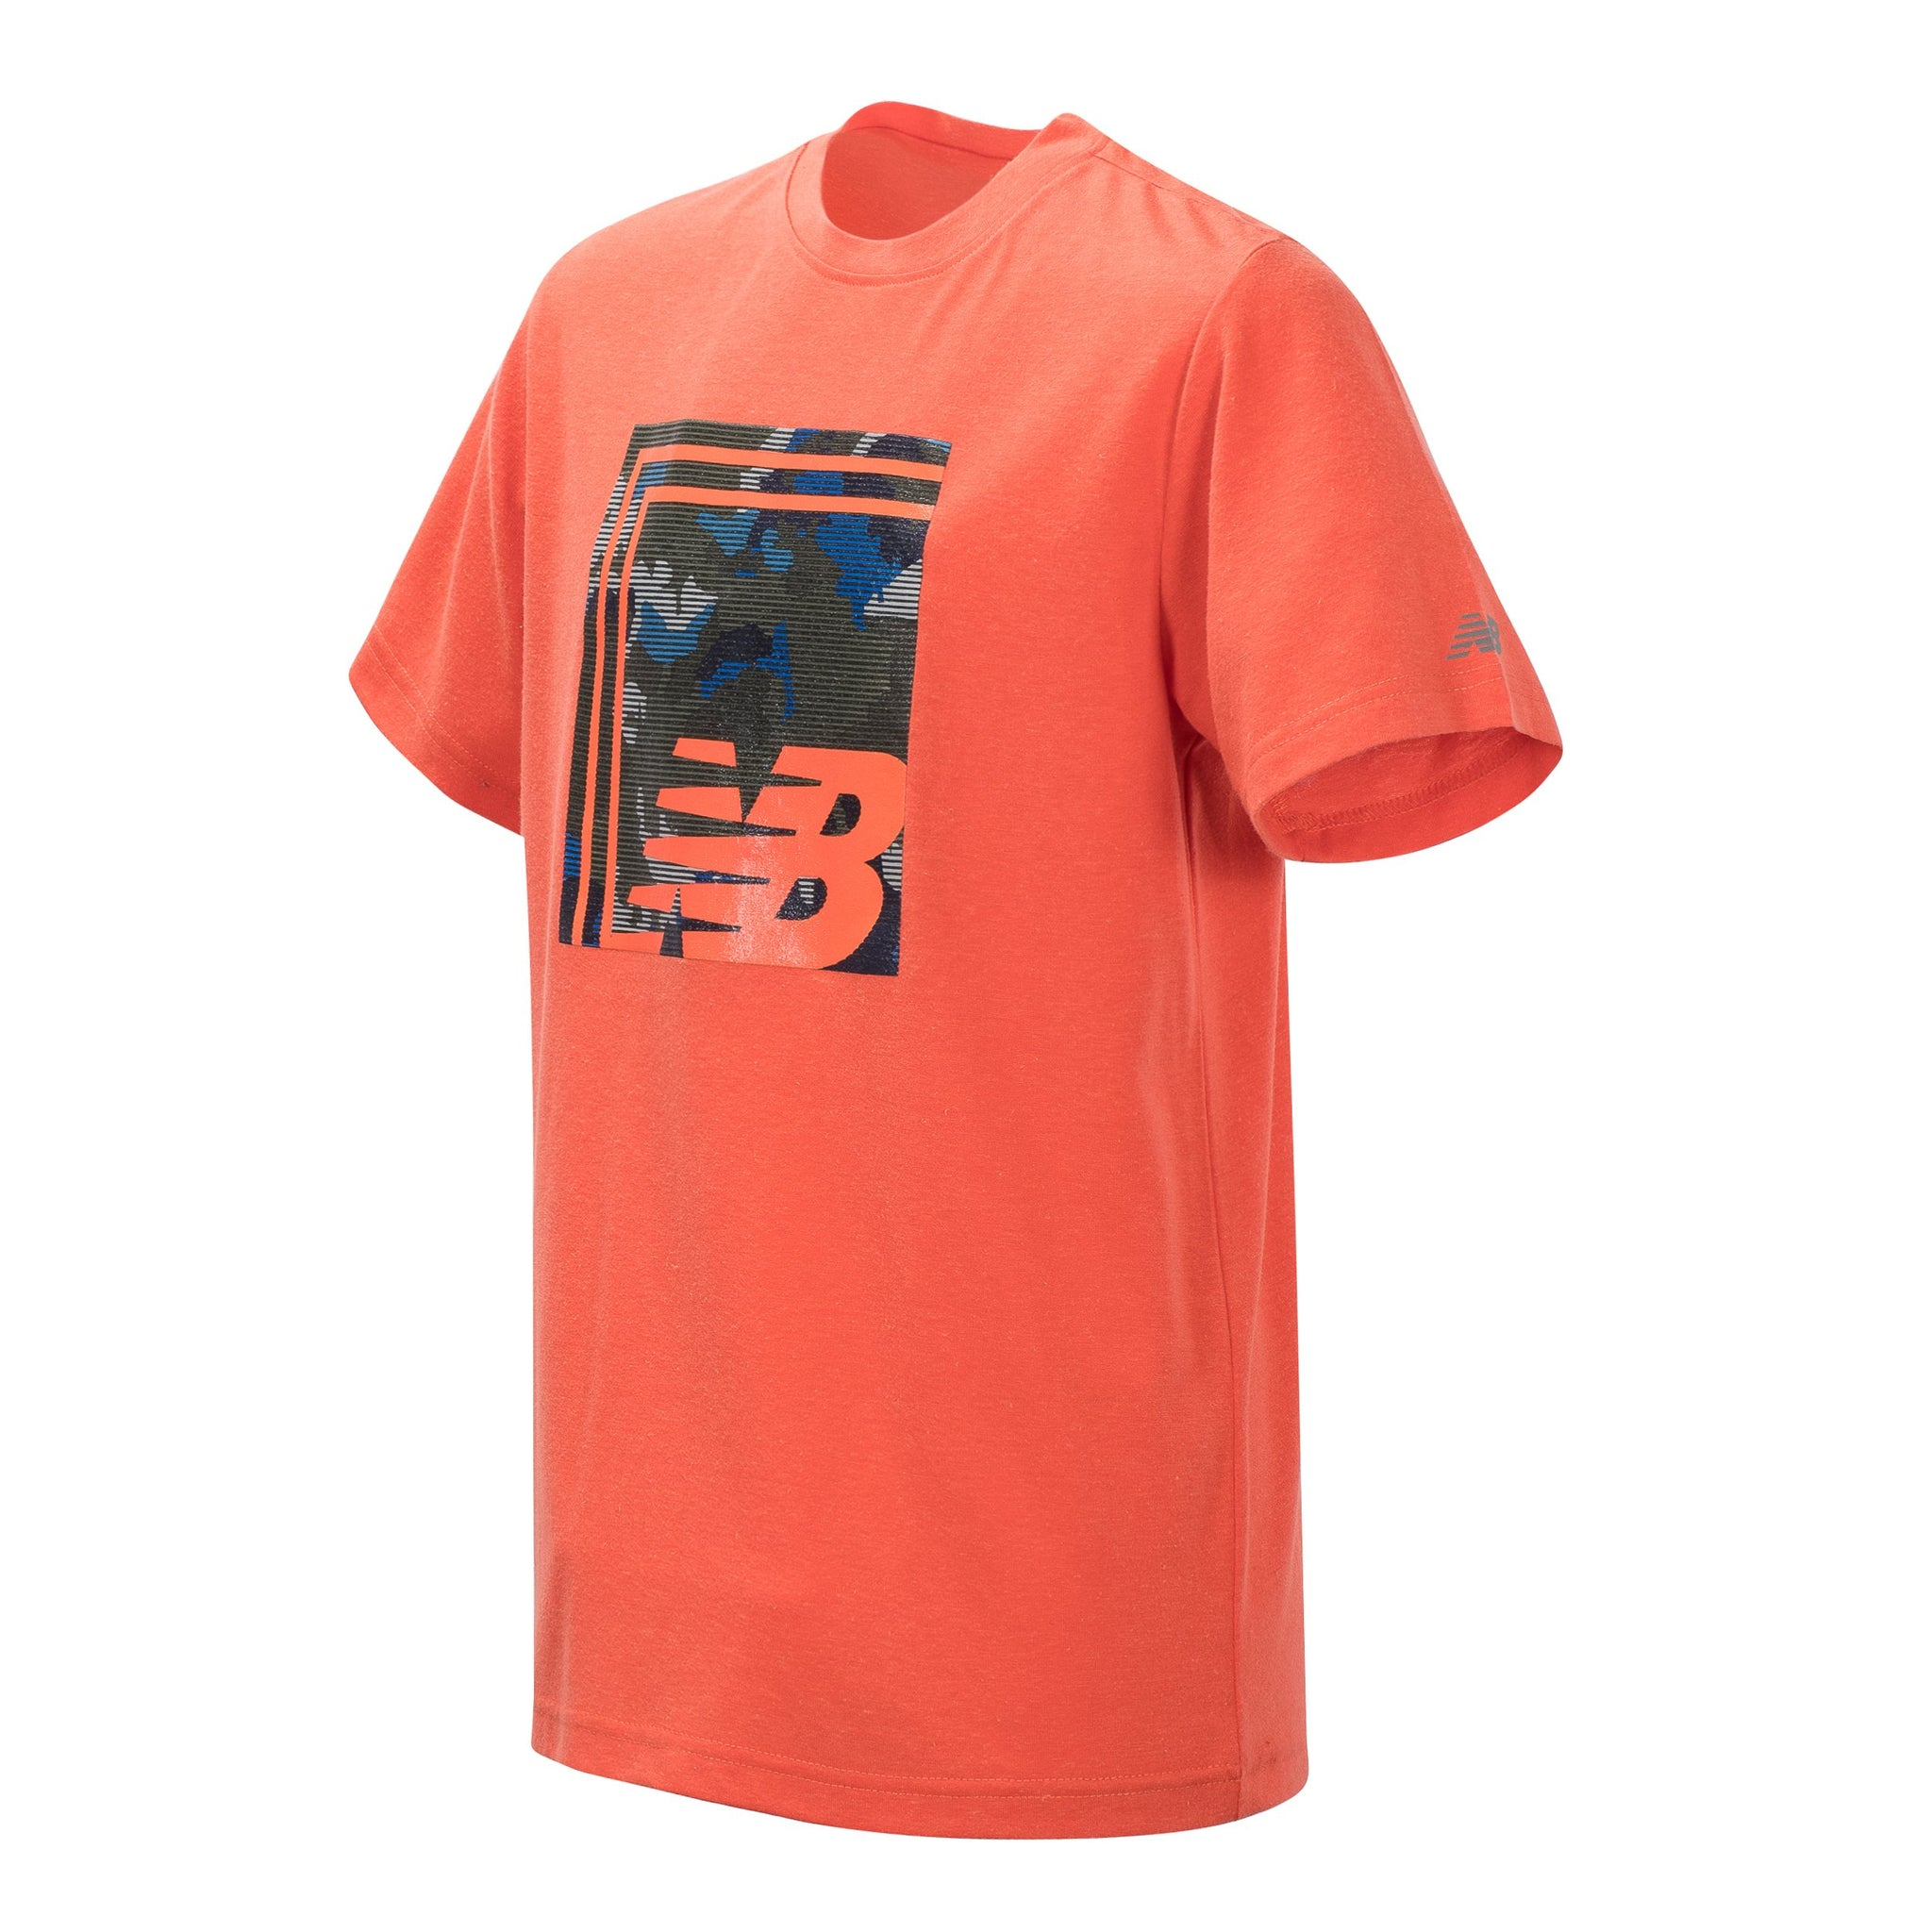 Boys' New Balance Coral Glow Short Sleeve Graphic Tee